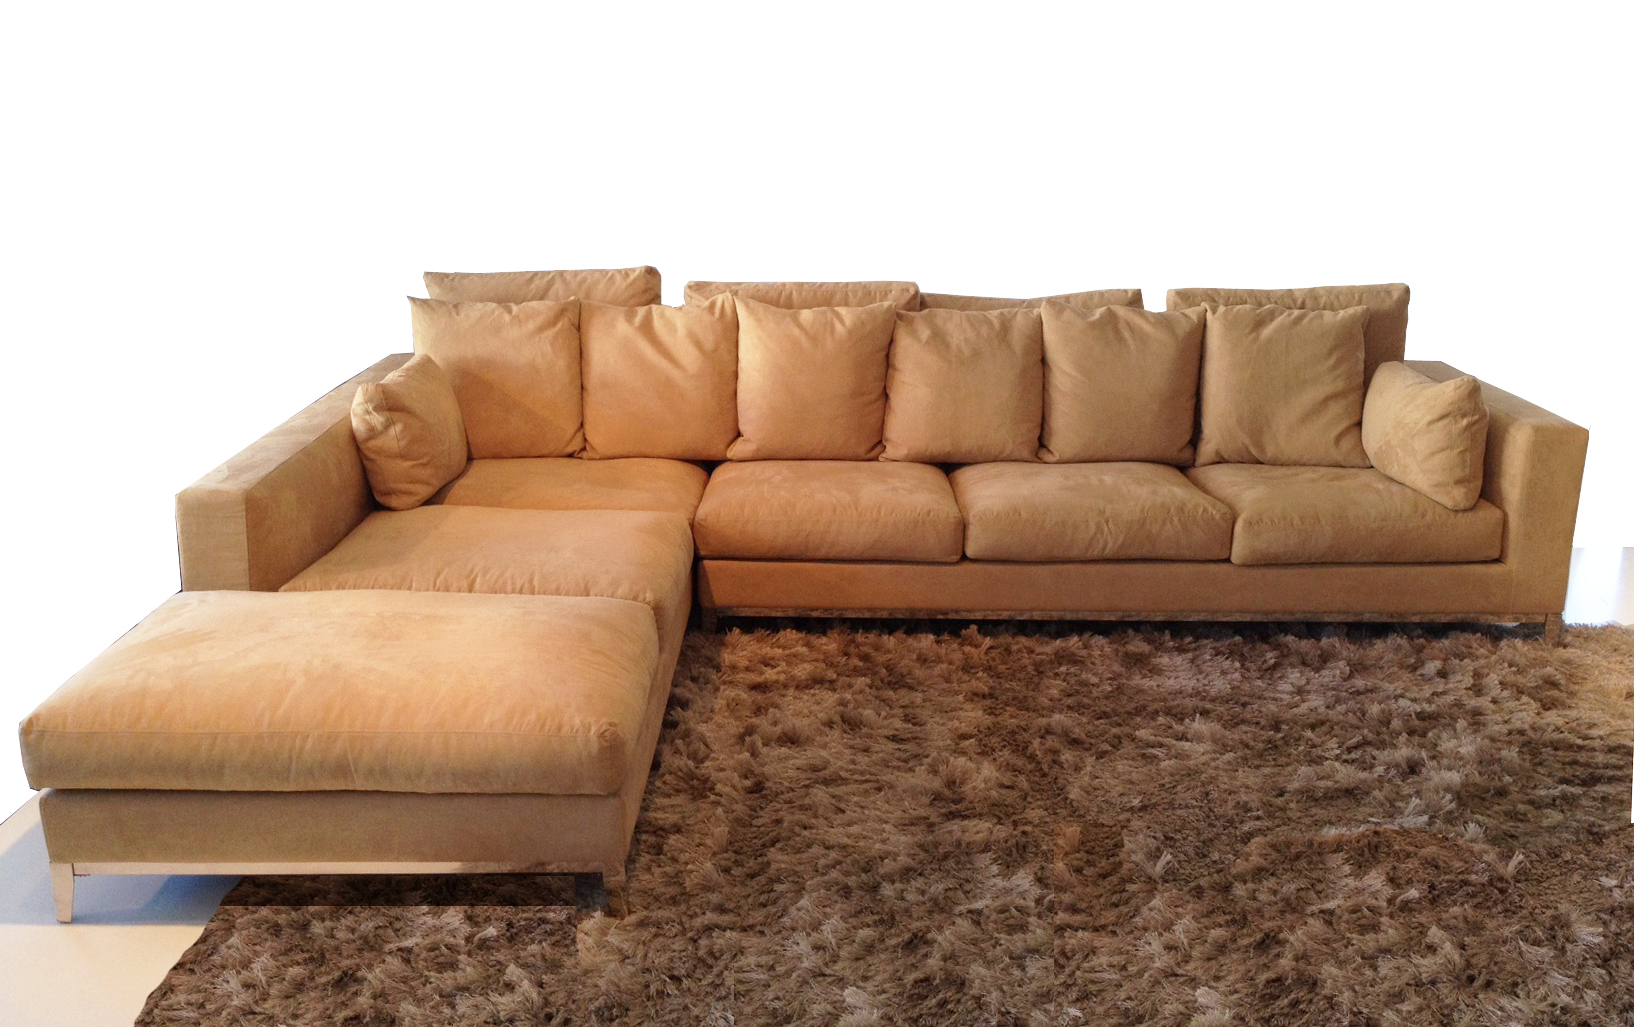 Large Sectional Sofas | Sectional Sleeper Sofa | Lazy Boy Couches